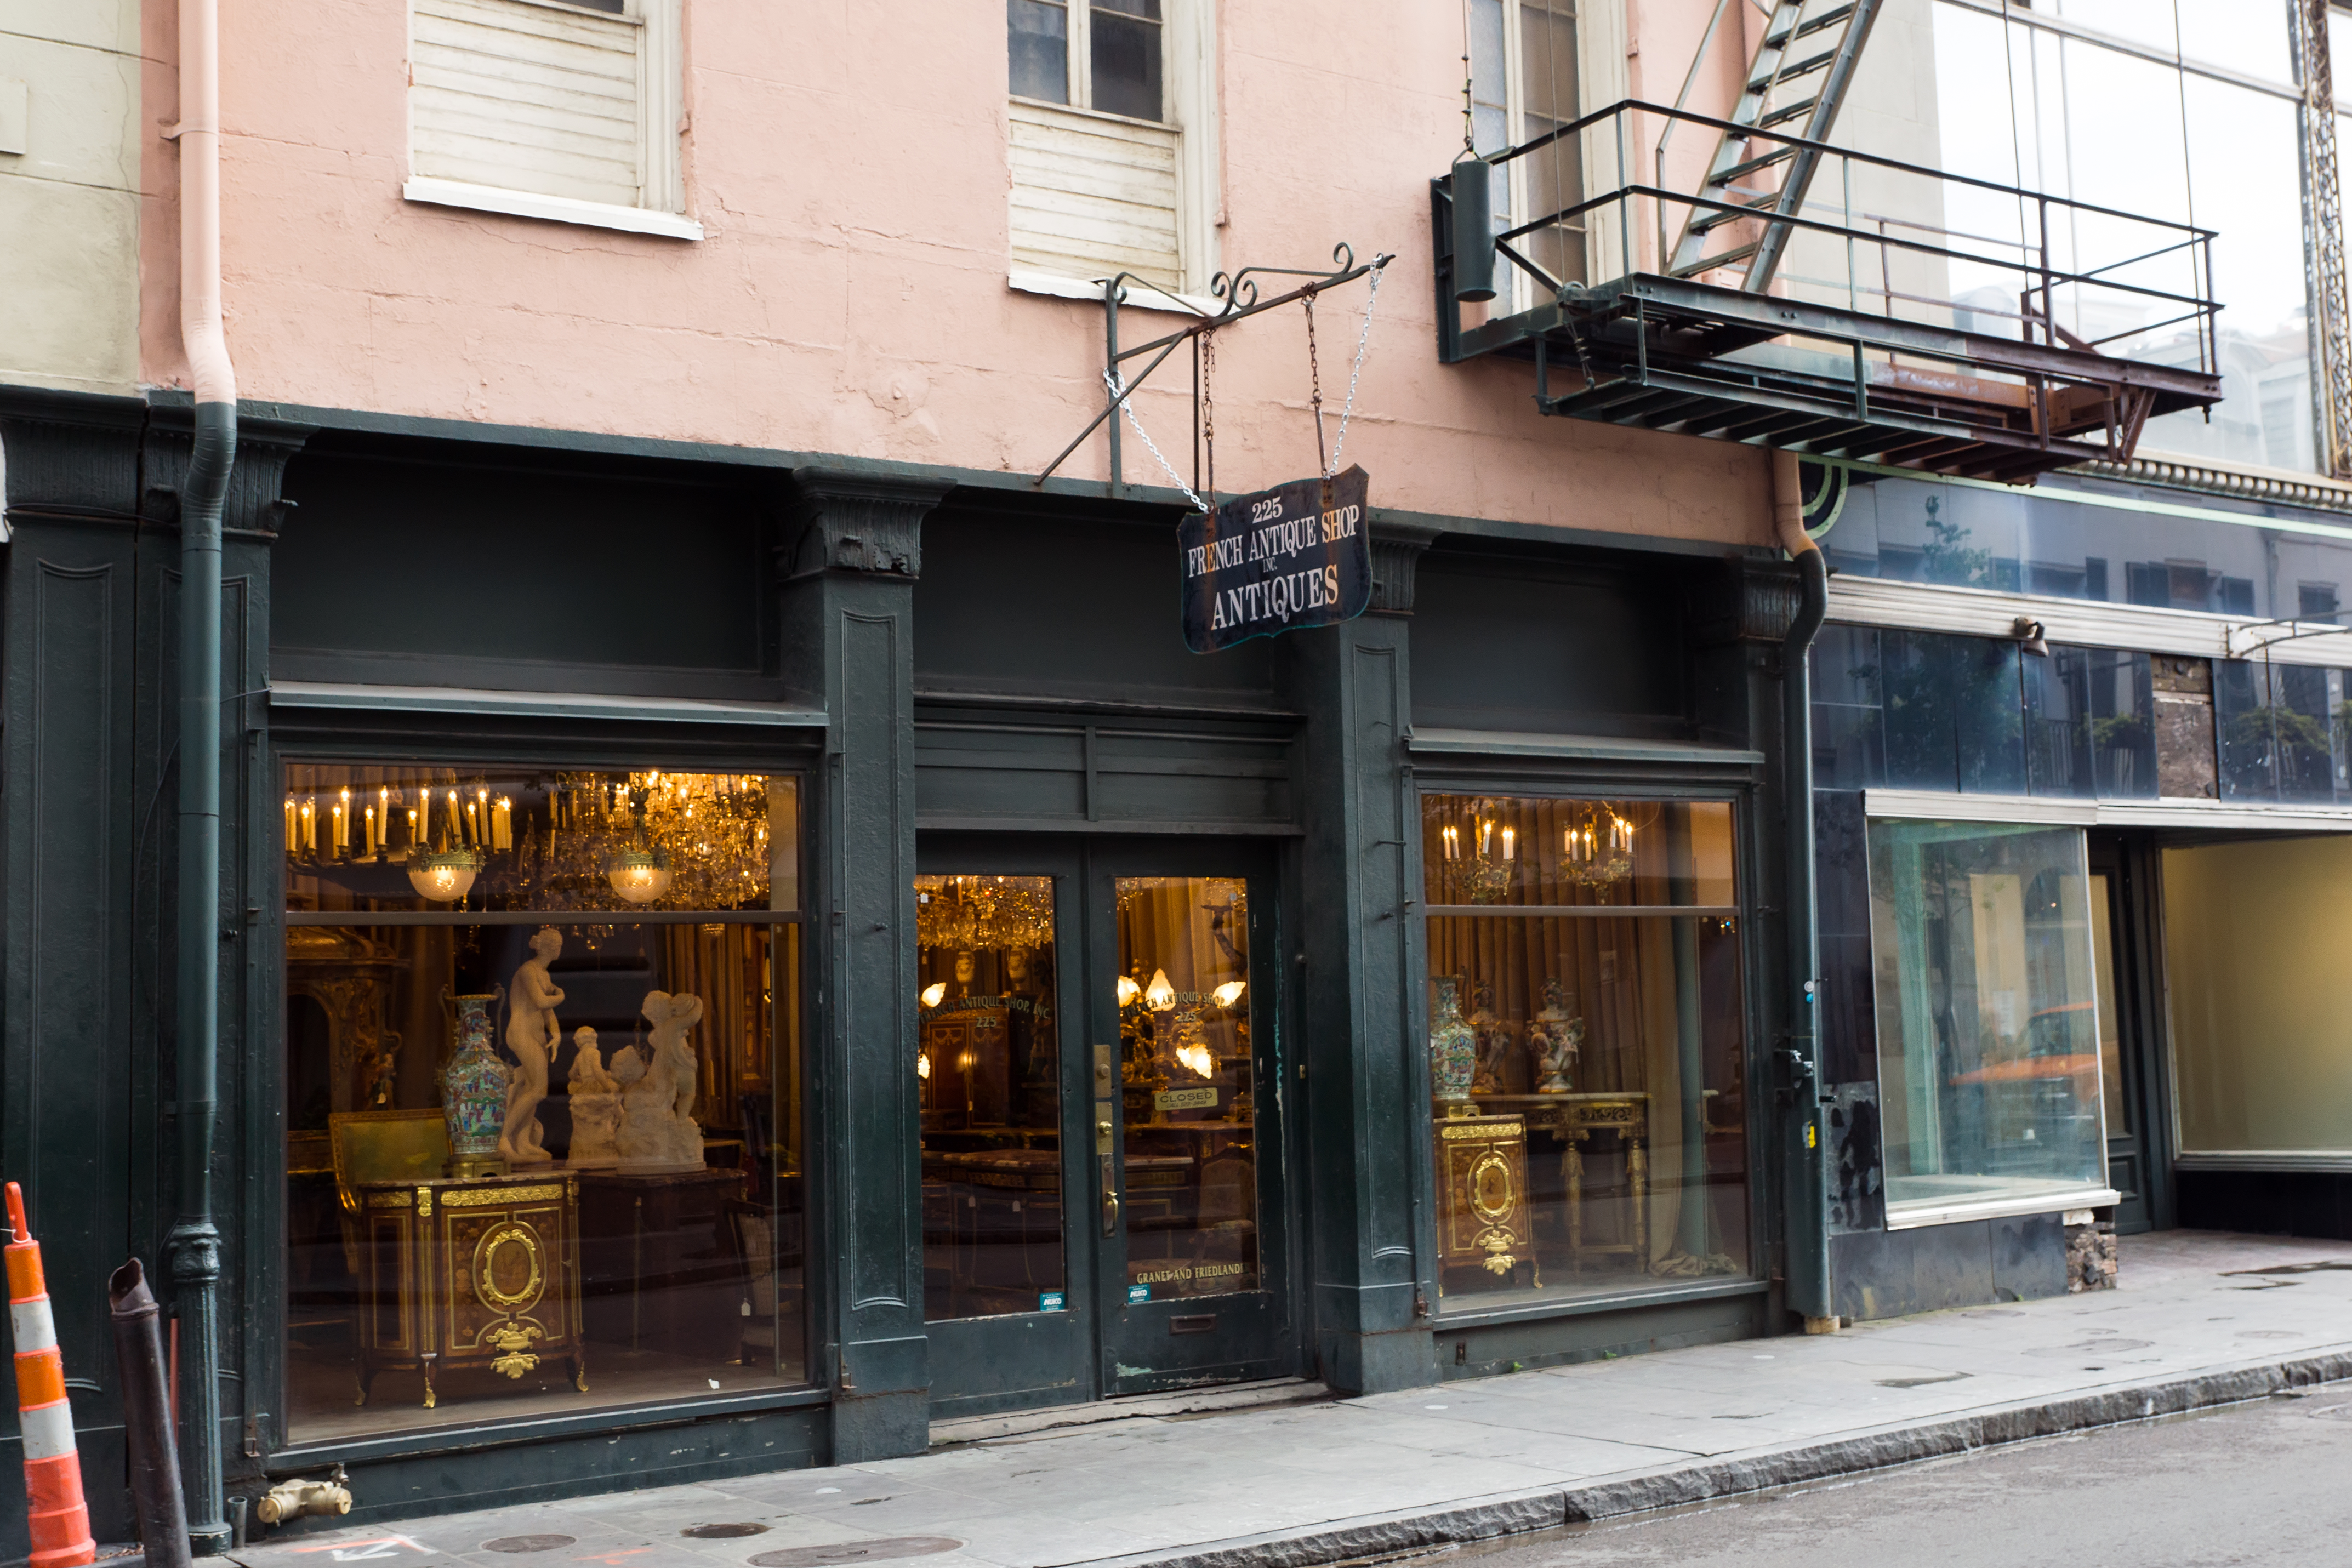 Walking through New Orleans http://www.betsiworld.com/new-orleans-geta…ng-list-and-tips/